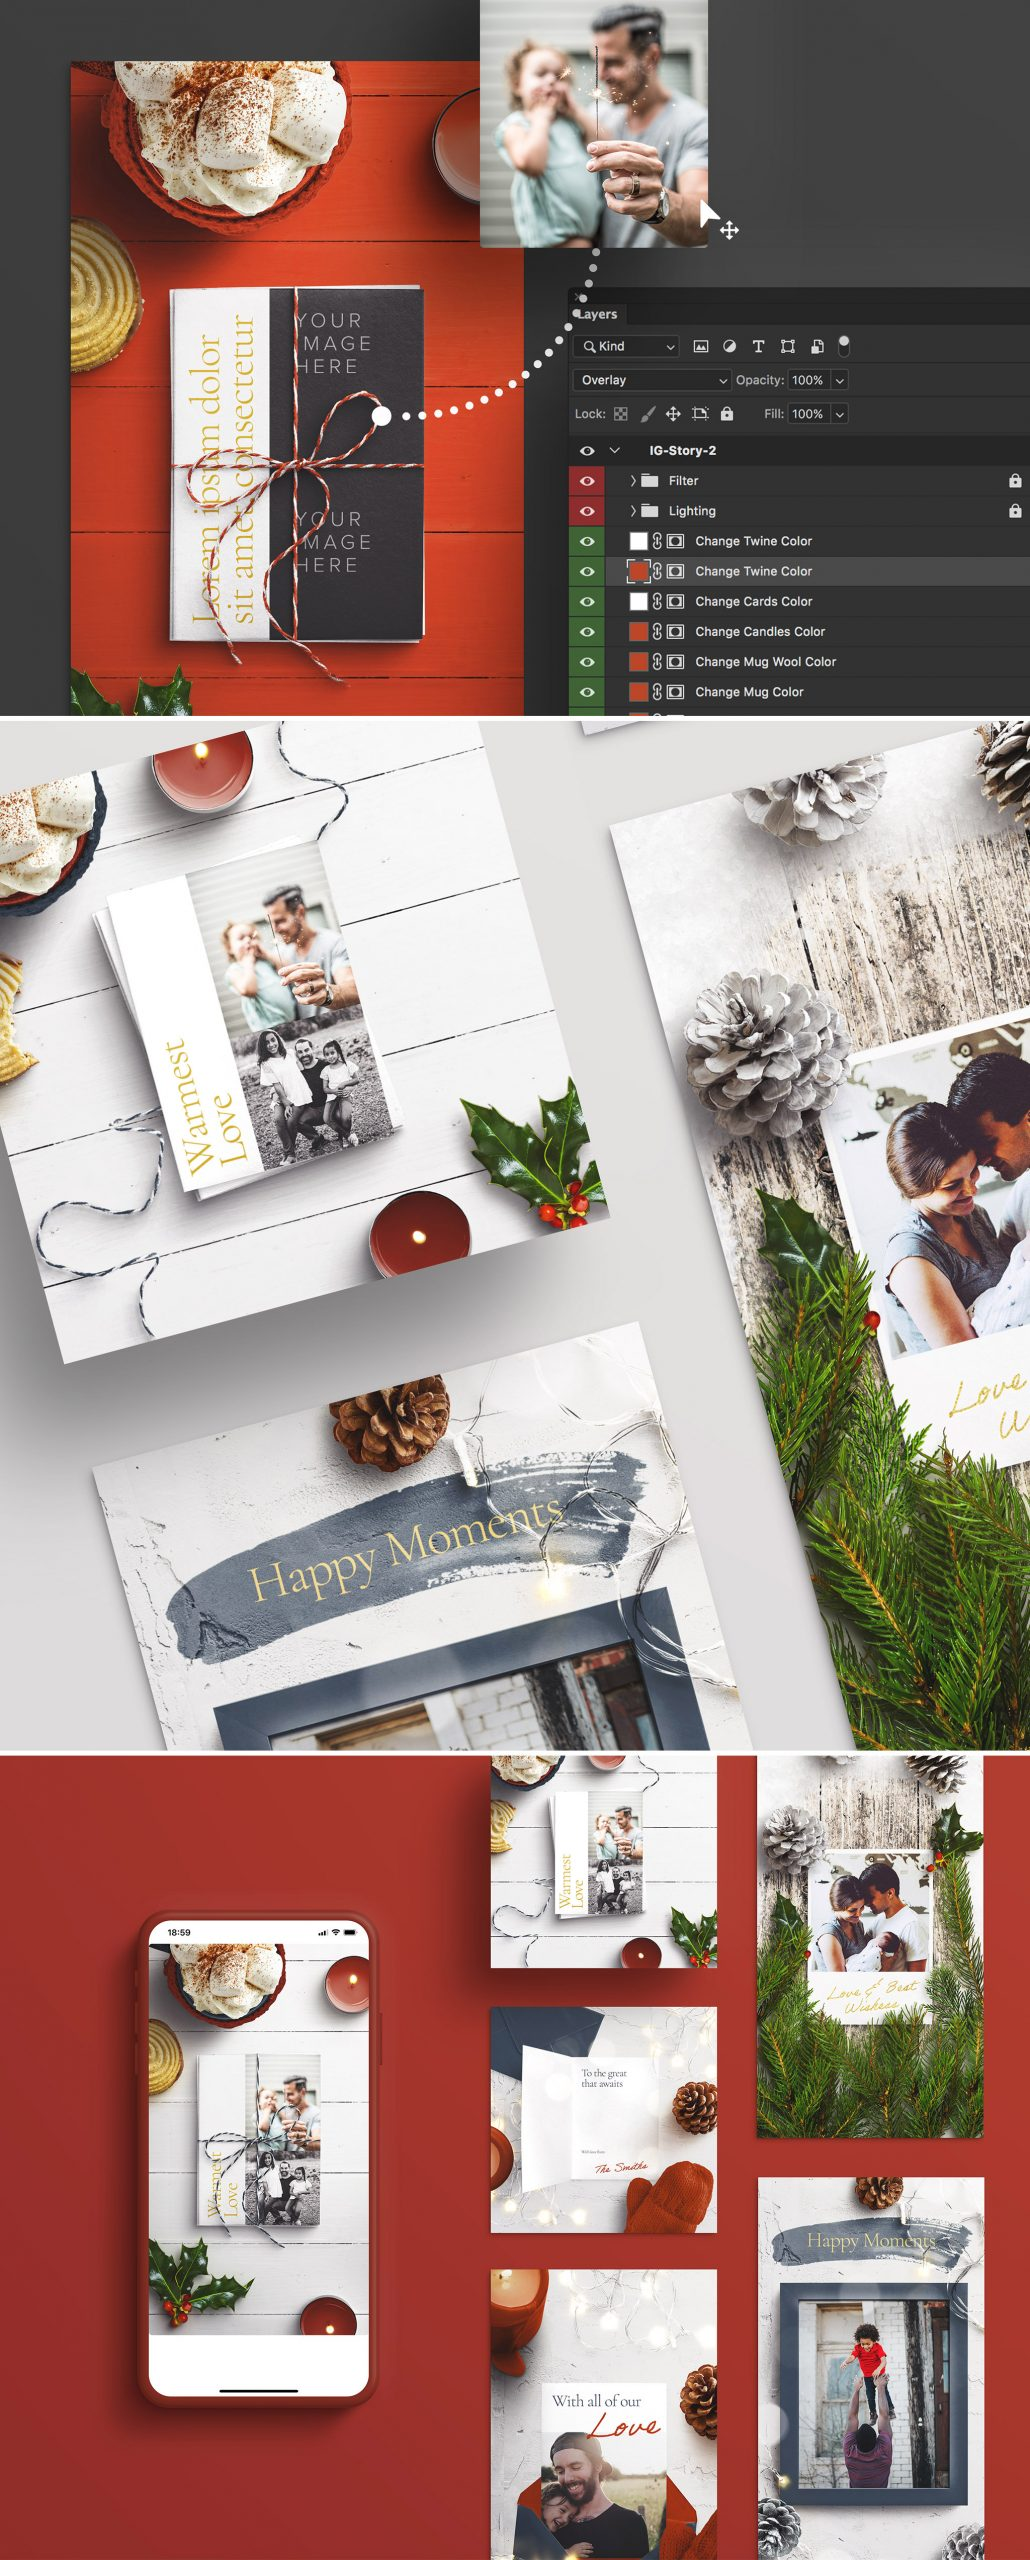 light and bright mockup social media card preview